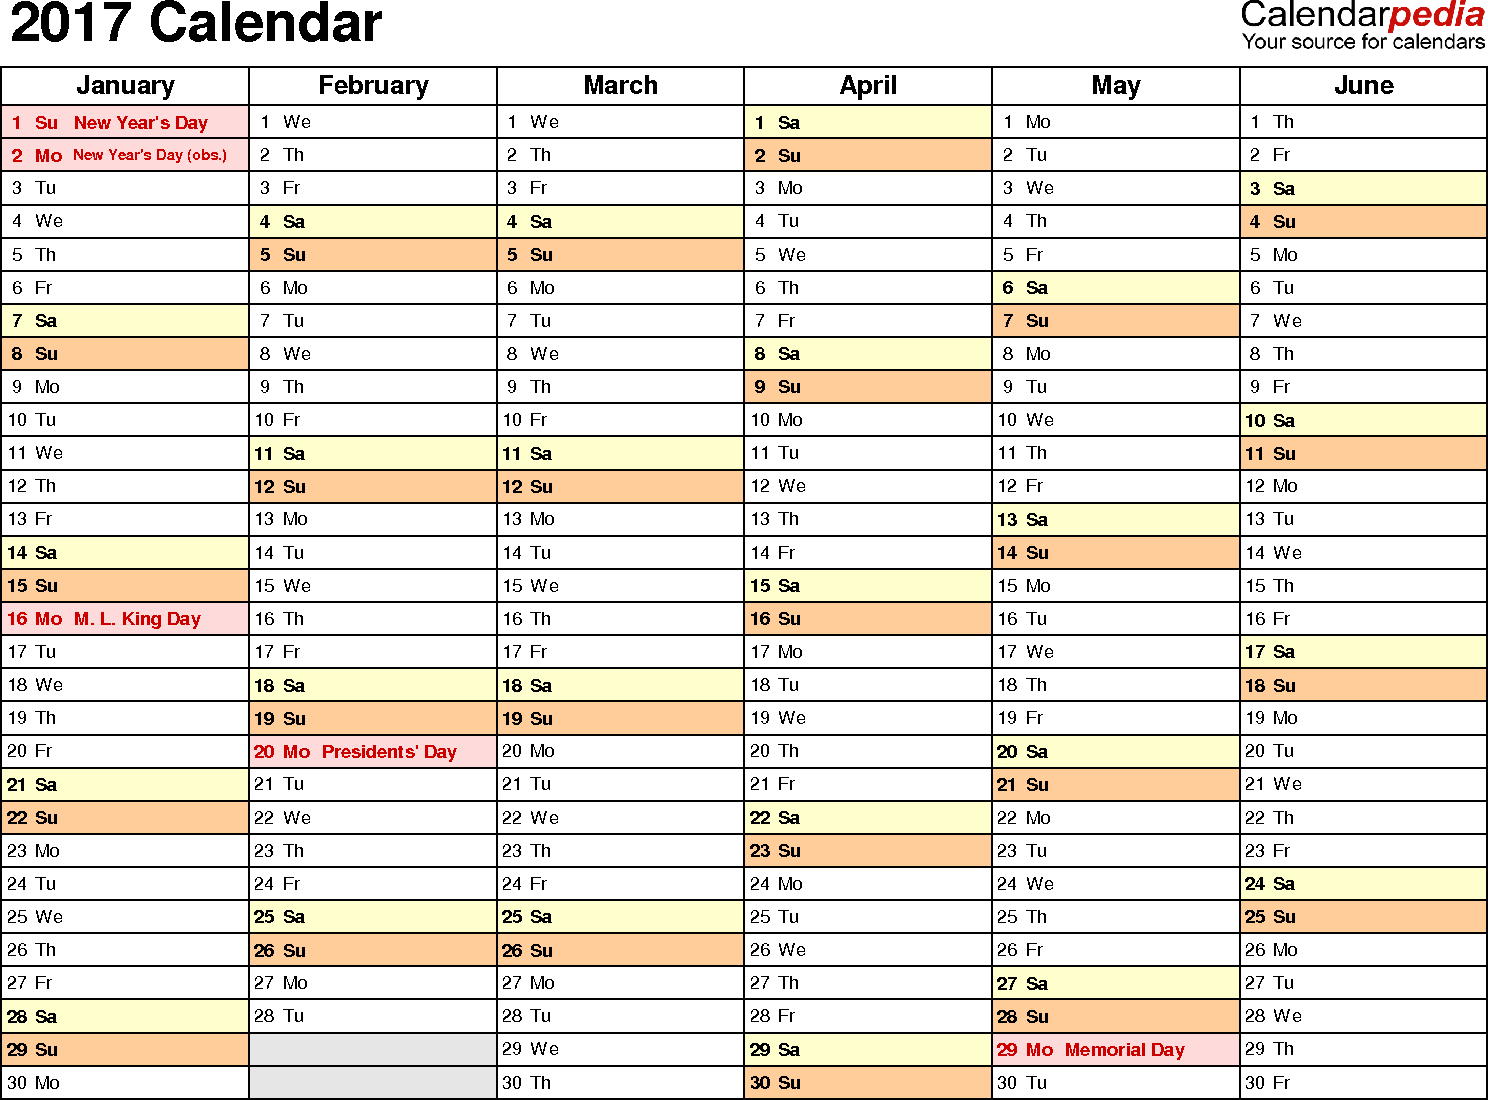 Ediblewildsus  Pleasant  Calendar  Download  Free Printable Excel Templates Xls With Remarkable Template   Calendar For Excel Months Horizontally  Pages Landscape Orientation With Extraordinary Excel Cannot Complete The Task With Available Resources Also Excel  Subtotal In Addition Military Time Excel And What Is Word Excel As Well As Autofilter Excel Vba Additionally Display Formula In Excel From Calendarpediacom With Ediblewildsus  Remarkable  Calendar  Download  Free Printable Excel Templates Xls With Extraordinary Template   Calendar For Excel Months Horizontally  Pages Landscape Orientation And Pleasant Excel Cannot Complete The Task With Available Resources Also Excel  Subtotal In Addition Military Time Excel From Calendarpediacom